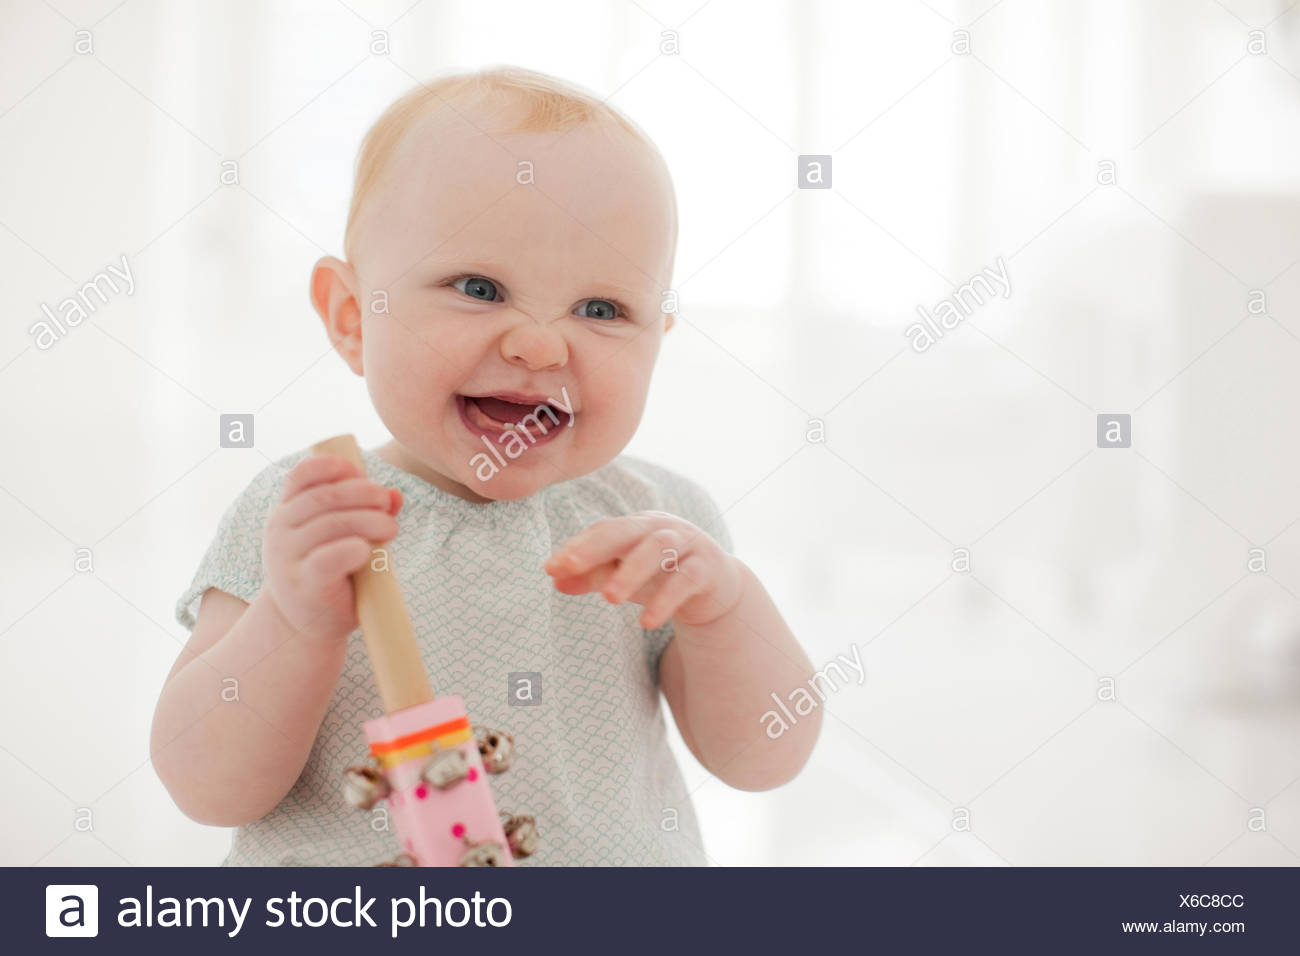 Smiling baby sitting on floor Stock Photo